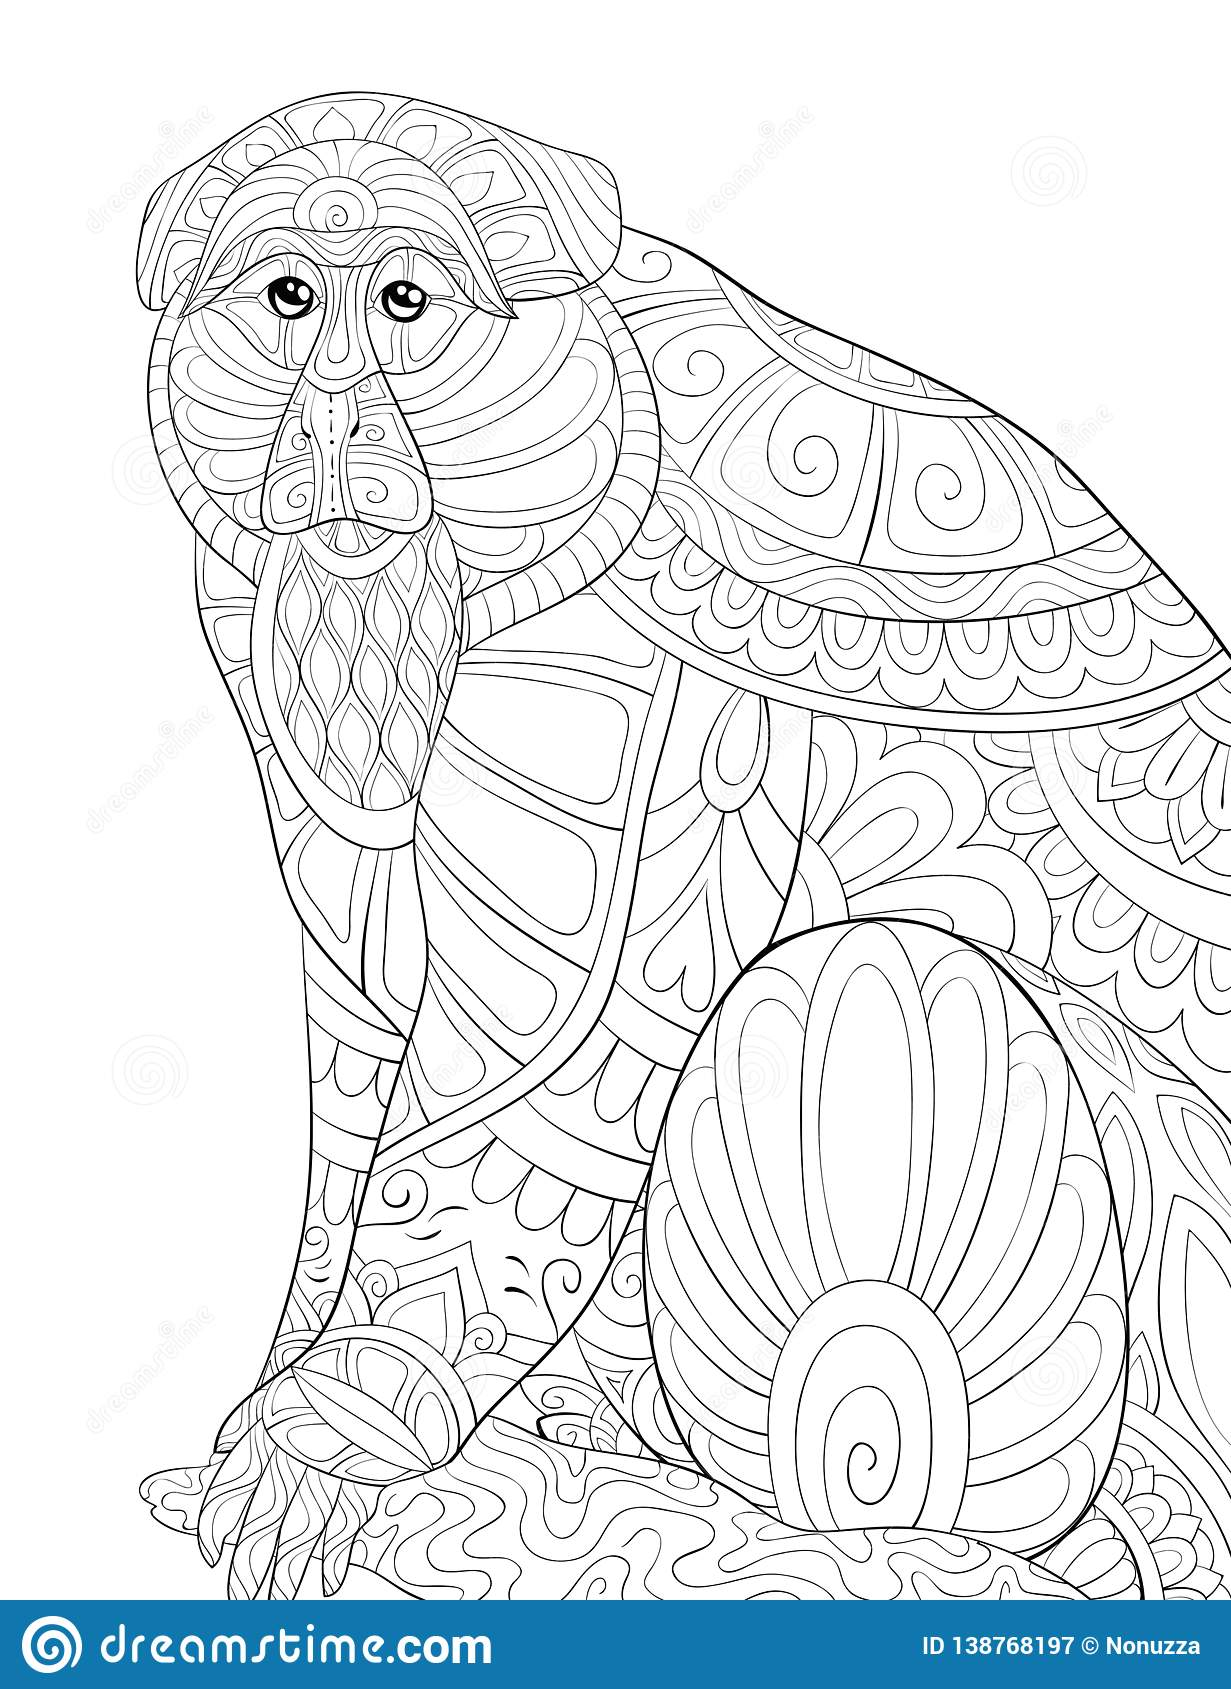 Adult Coloring Book Page A Cute Monkey On The Brunch Image For Relaxing Zen Art Style Illustration Stock Vector Illustration Of Elements Curves 138768197